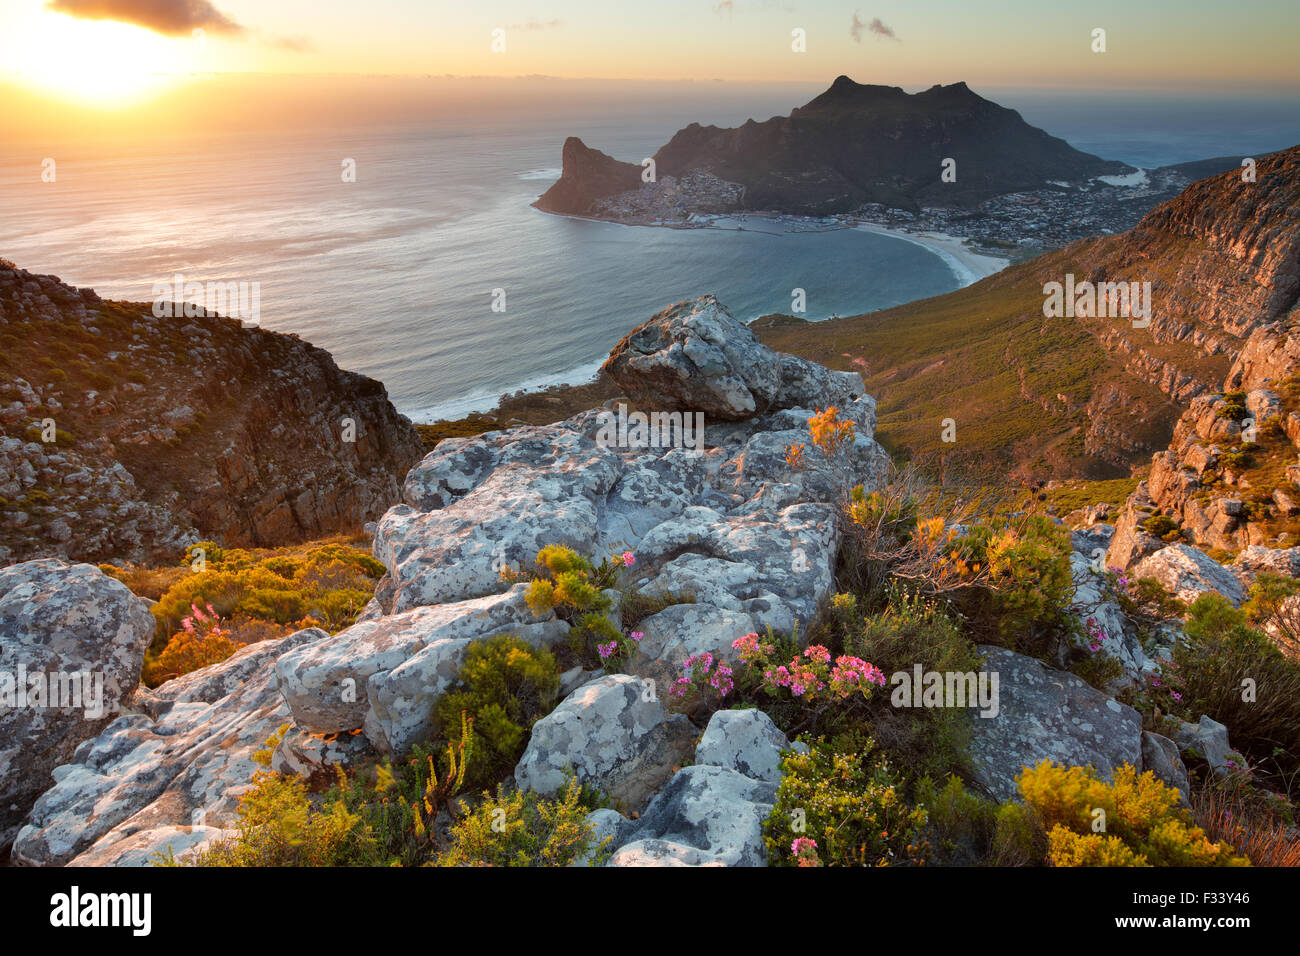 Hout Bay, from Table Mountain National Park, Western Cape, South Africa - Stock Image